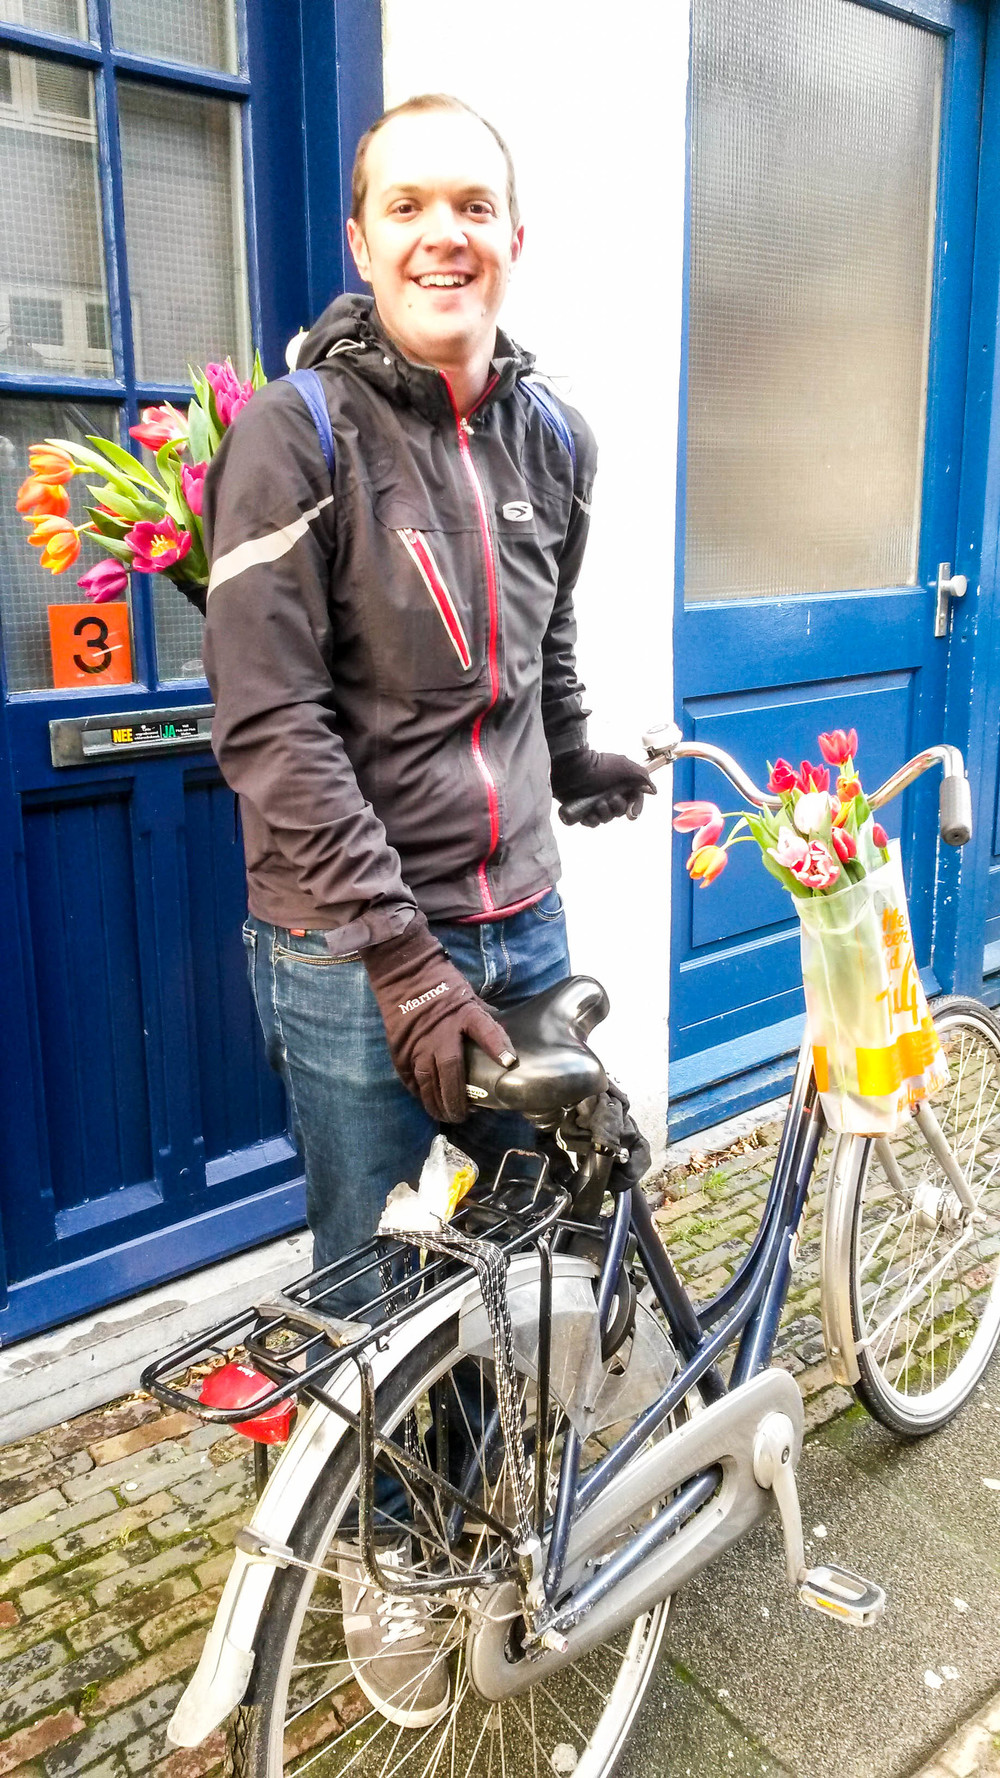 How did we get home with our tulips? By train and then by bike, of course!